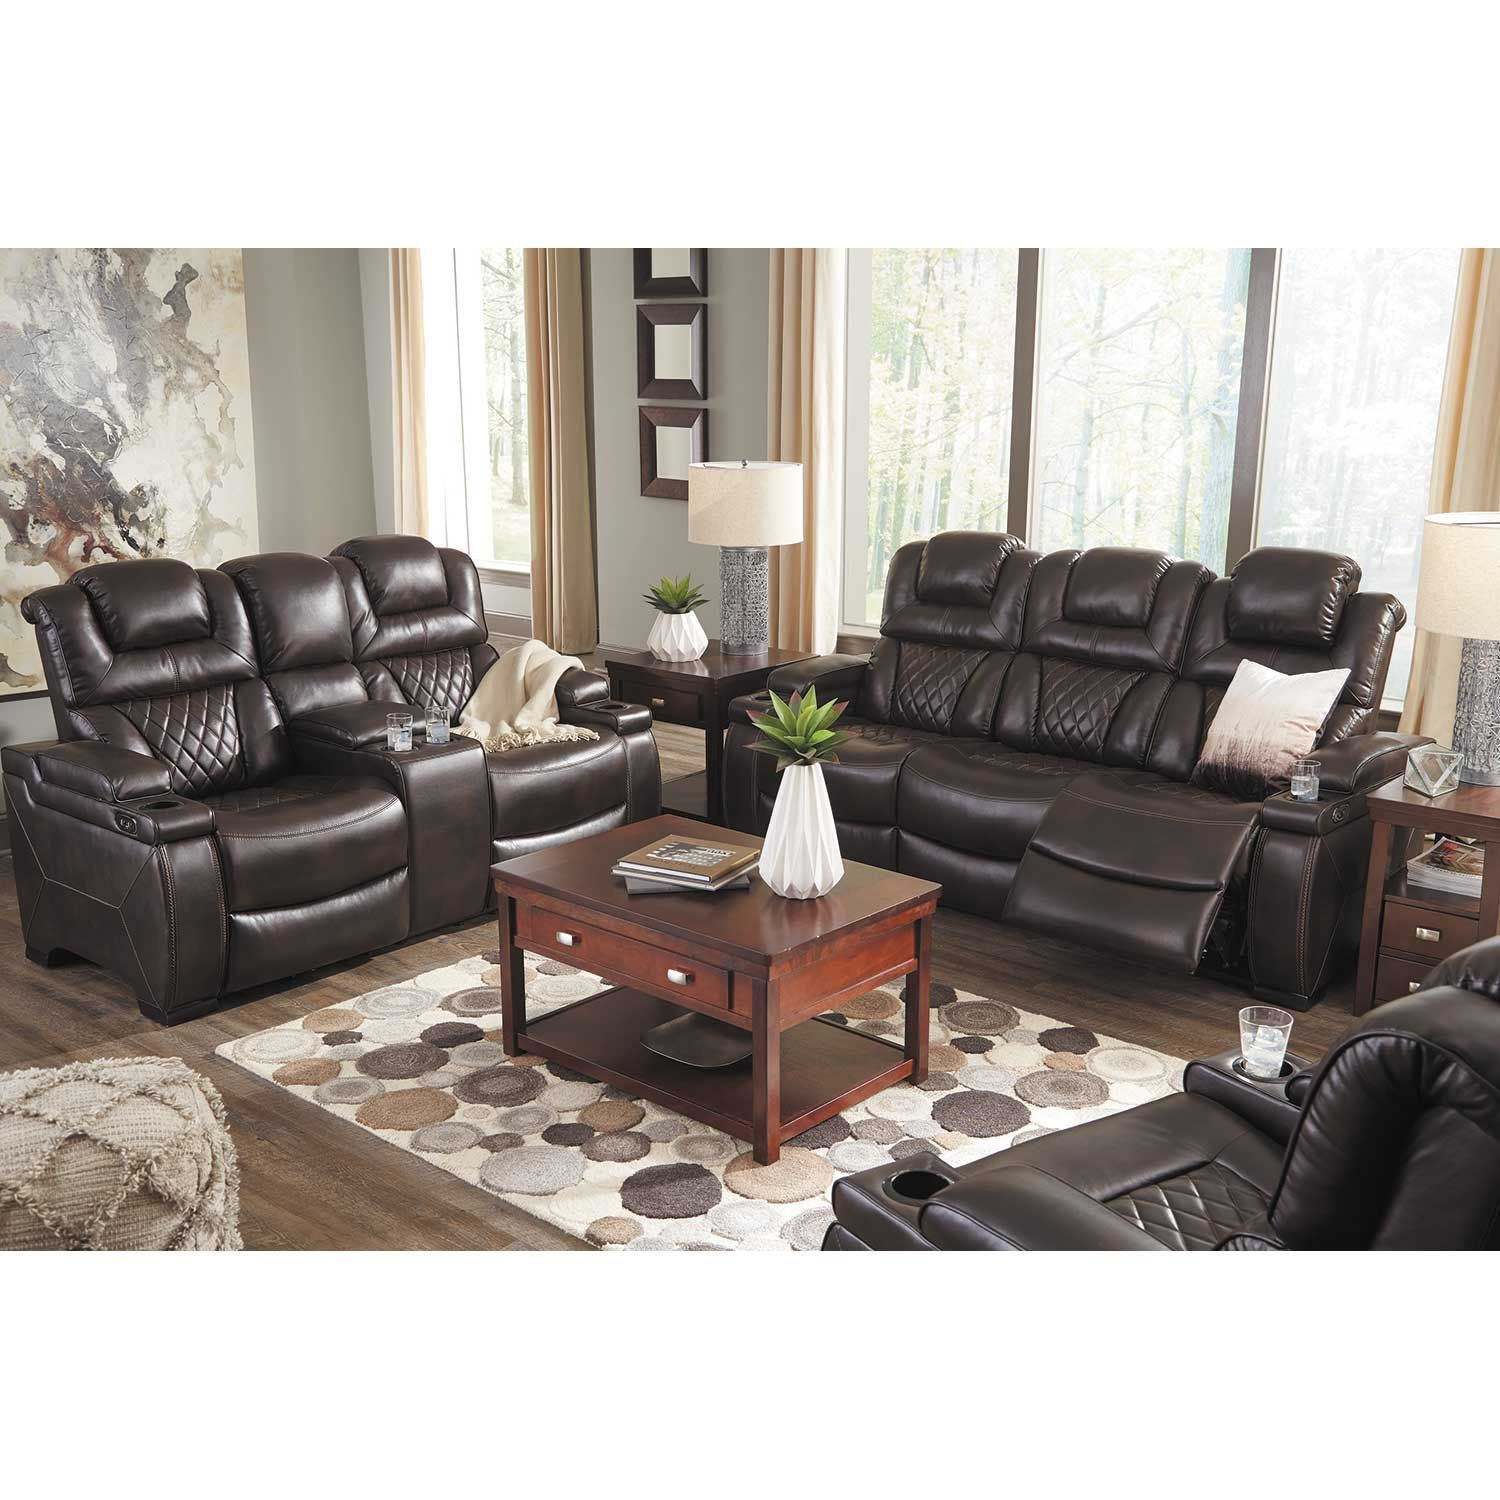 Ashleys Furiture: Warnerton Power Reclining Sofa With Drop Table